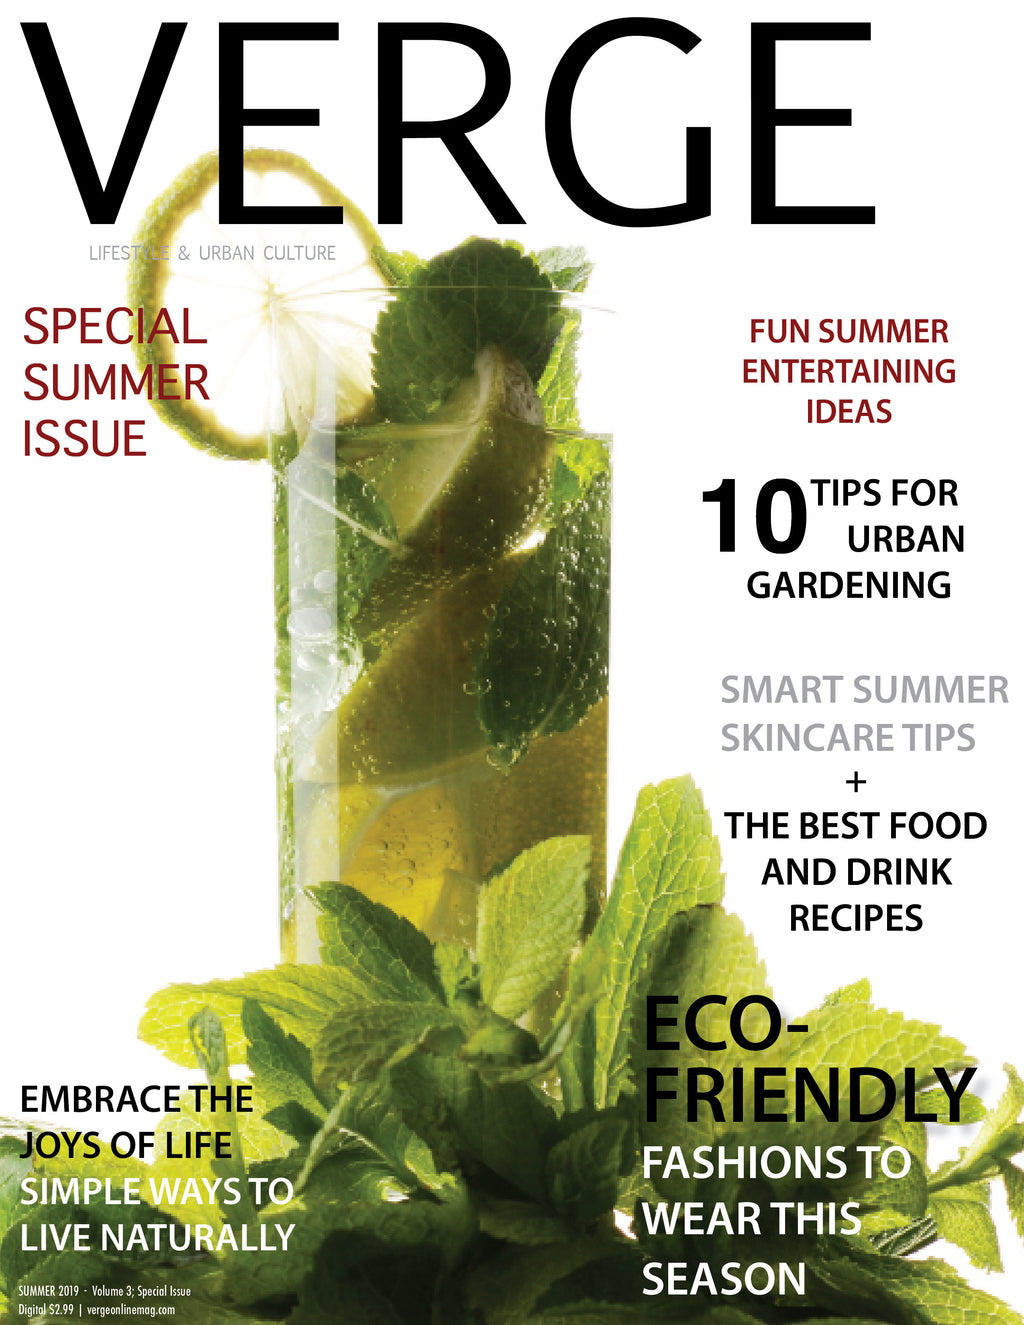 VERGE 2019 - Special Summer Issue (Digital)